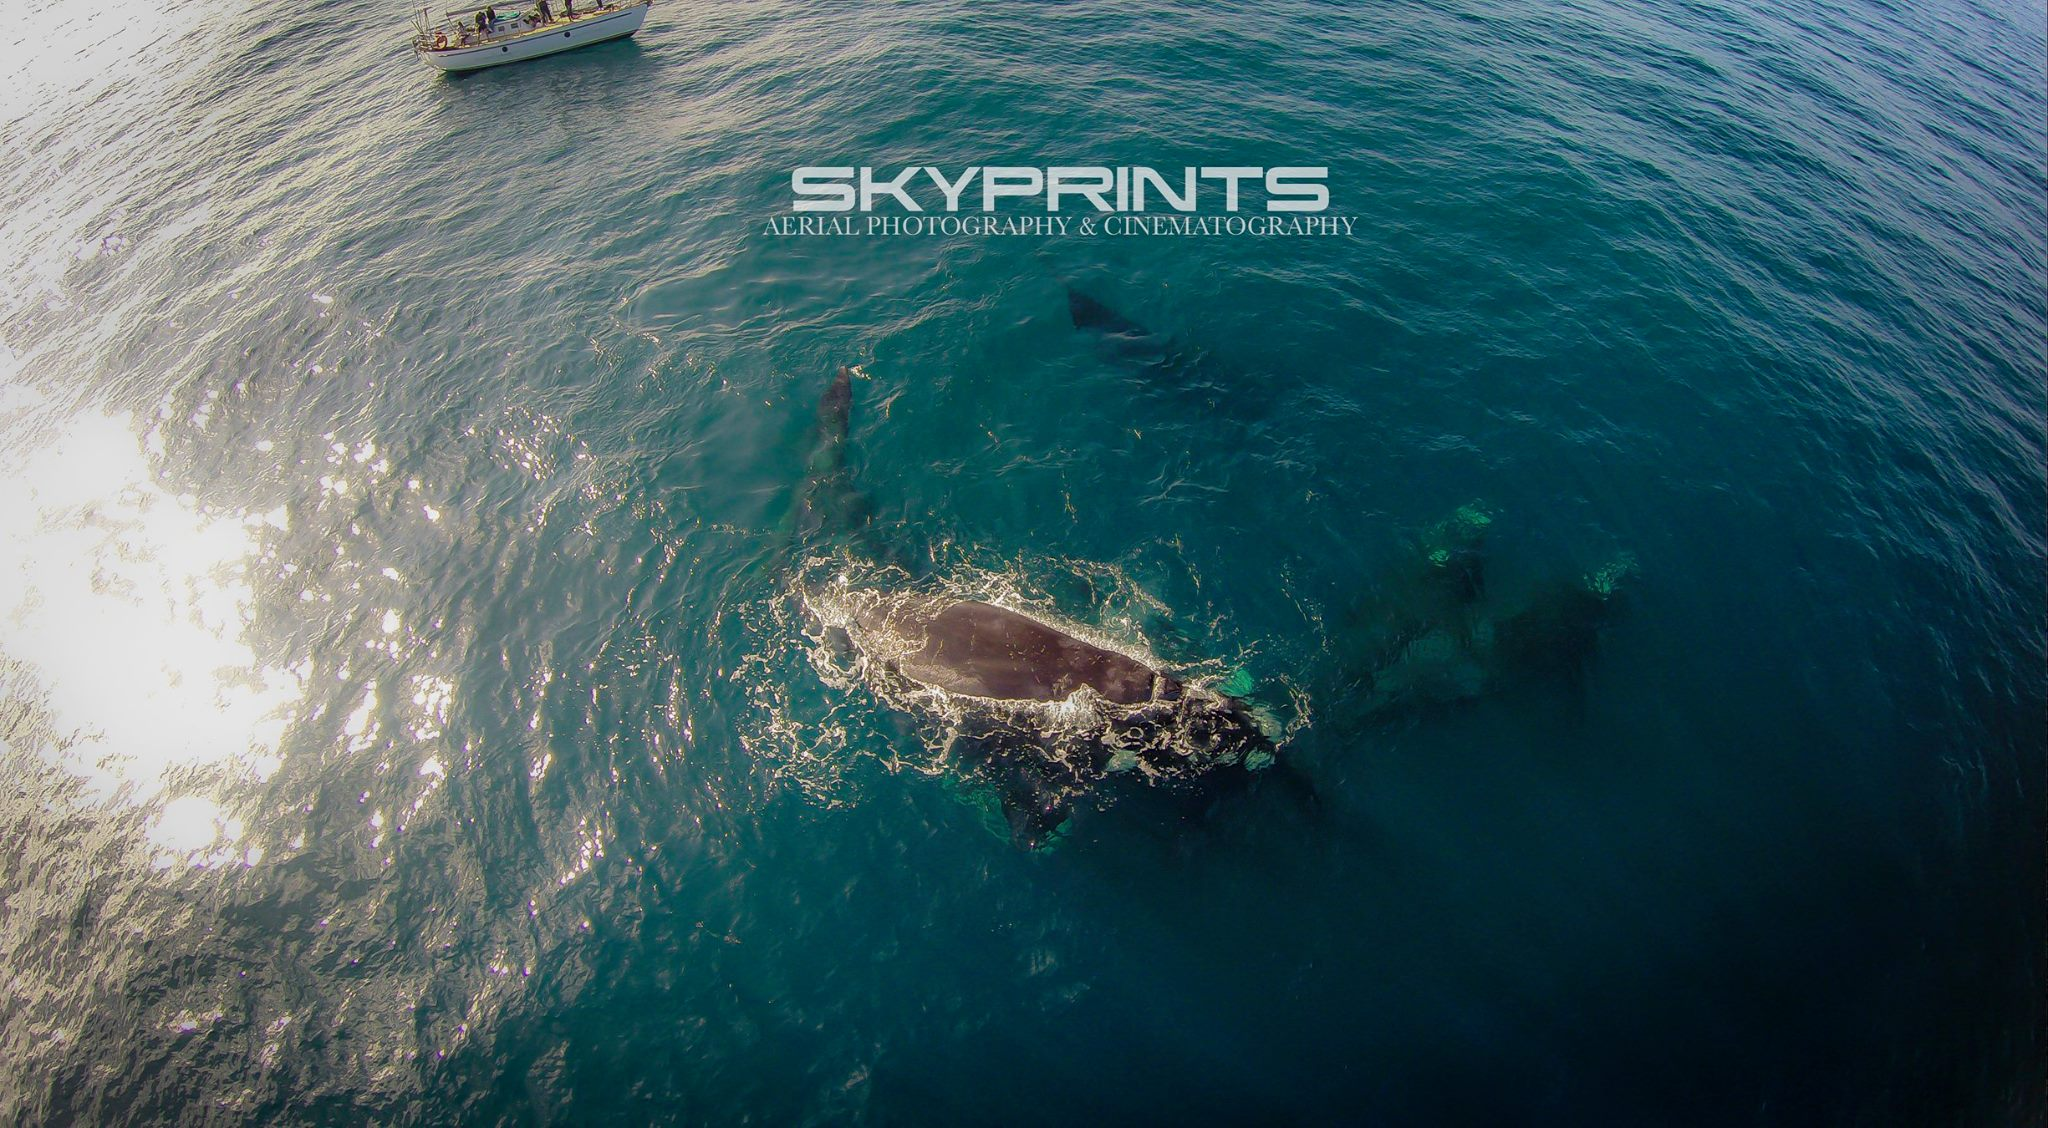 SKPRINTS Aerial Photography and Cinematrography